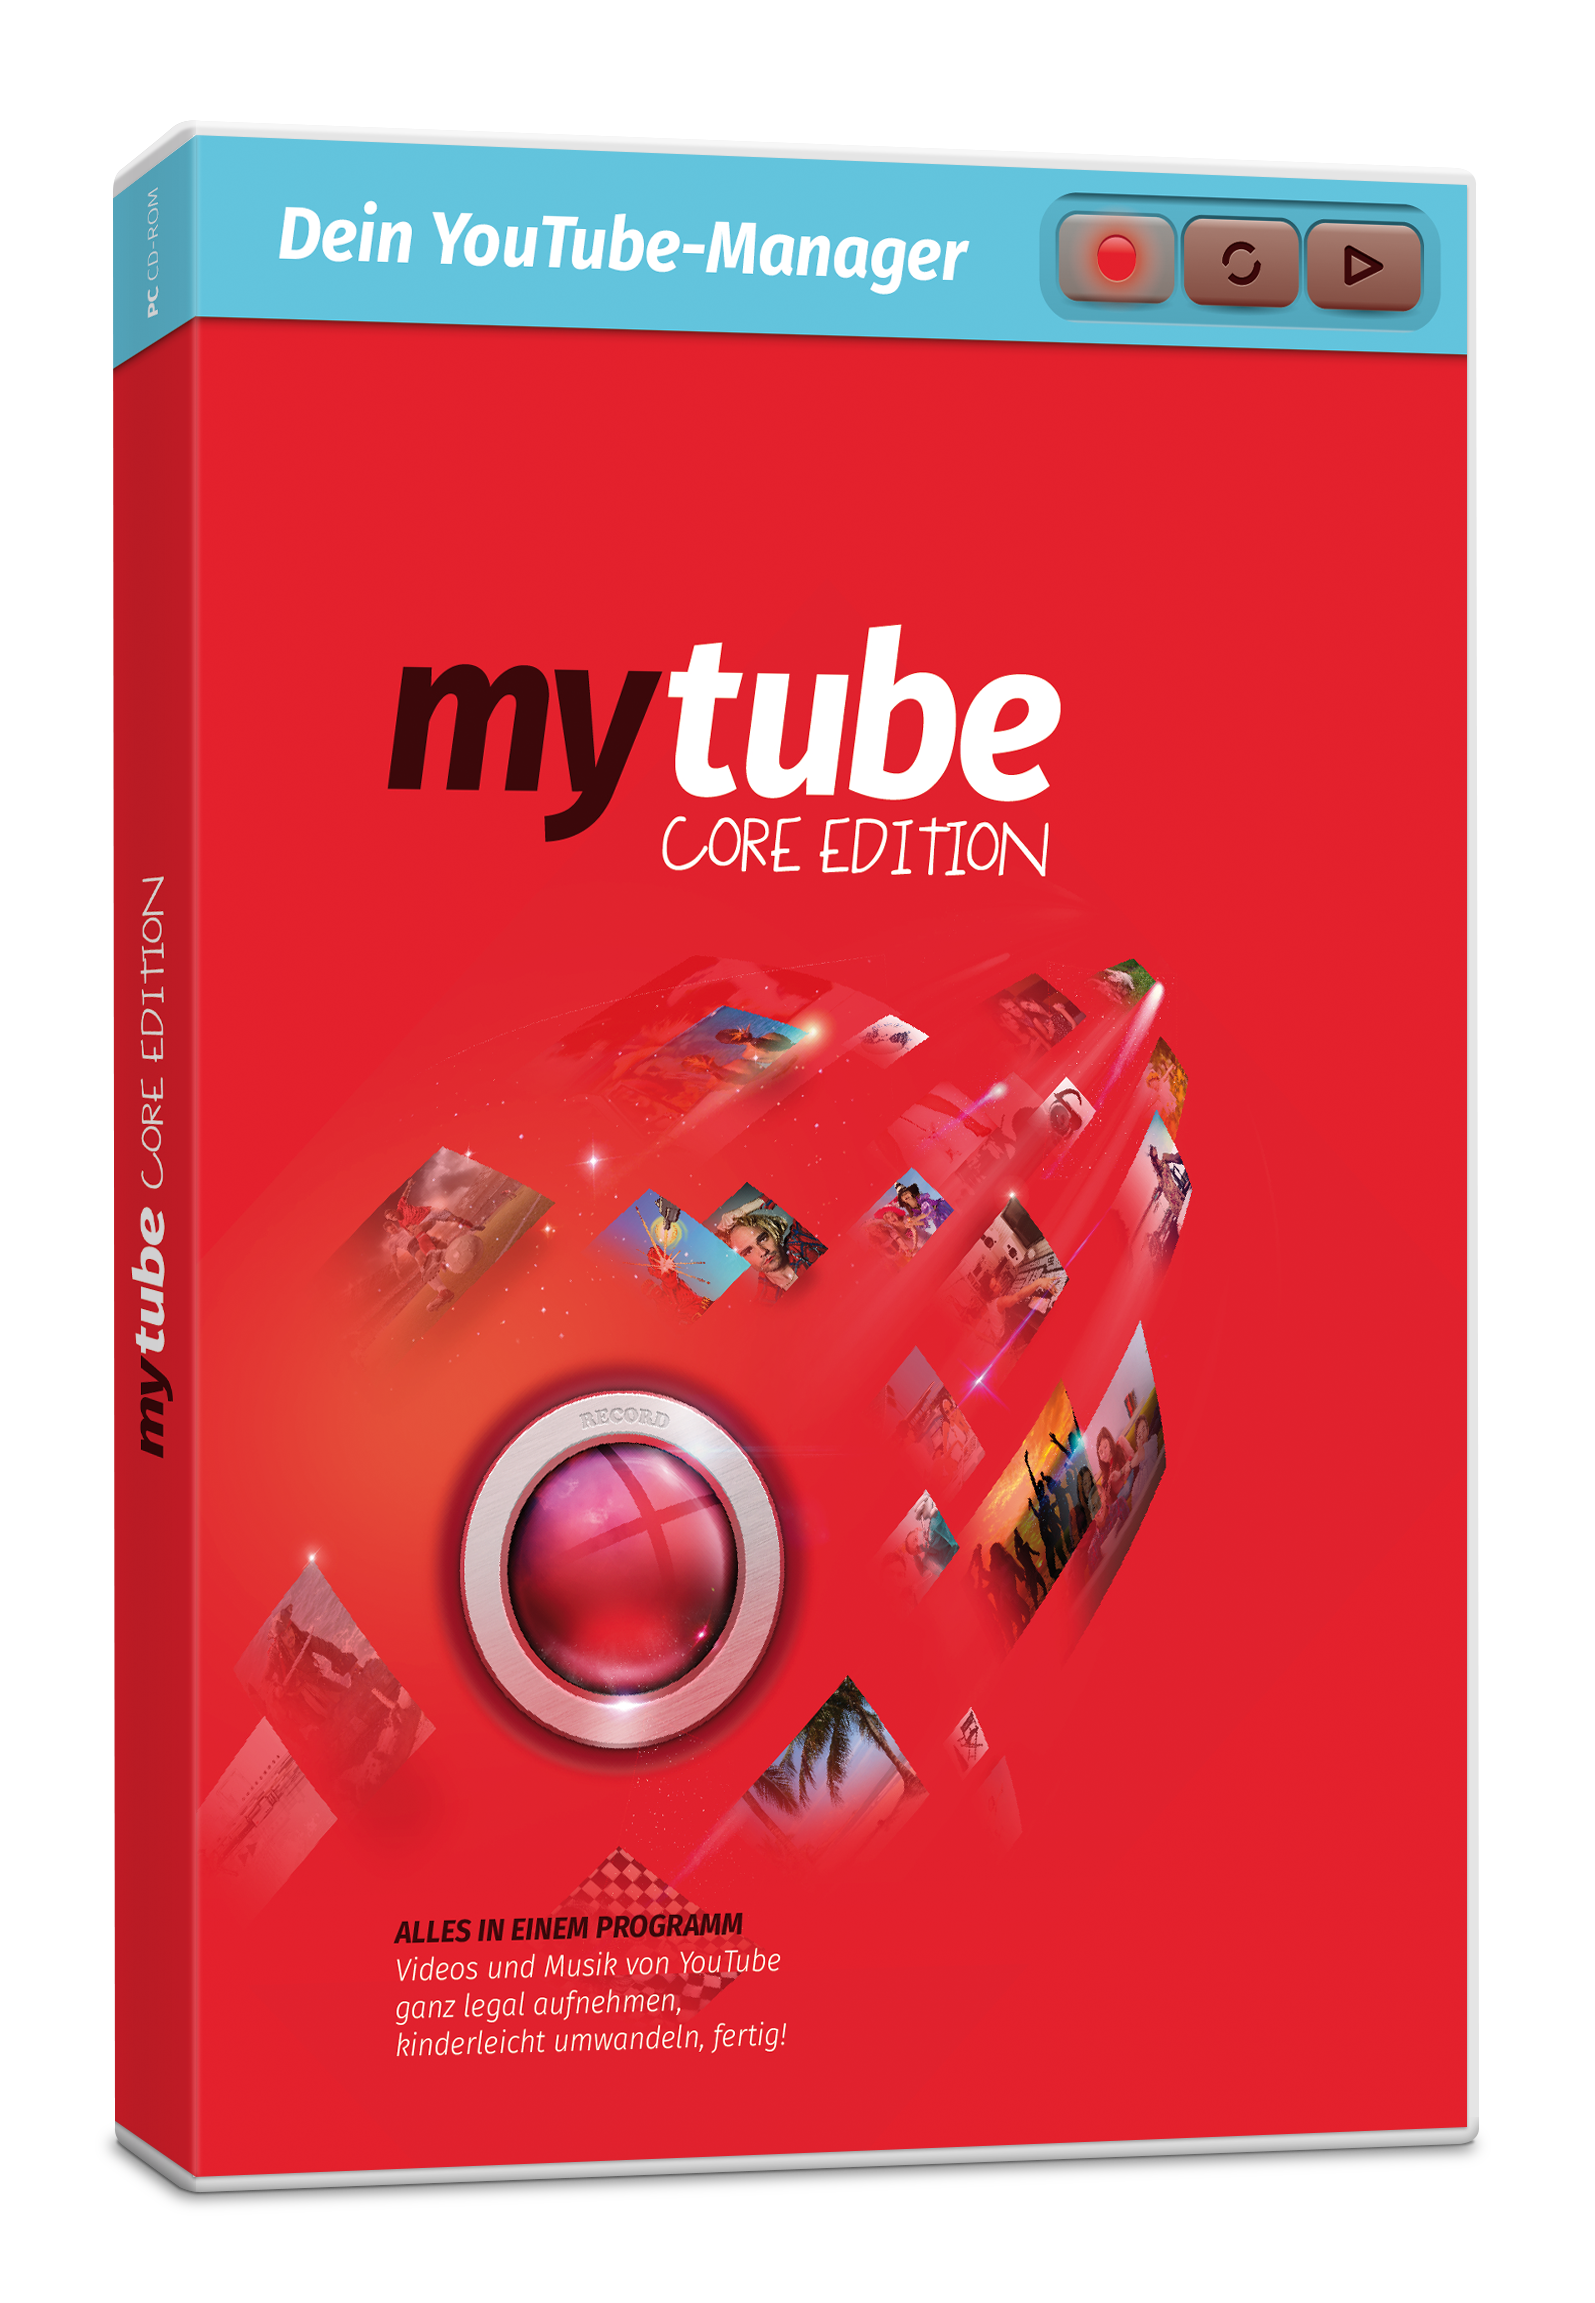 mytube-core-edition-links-72dpi